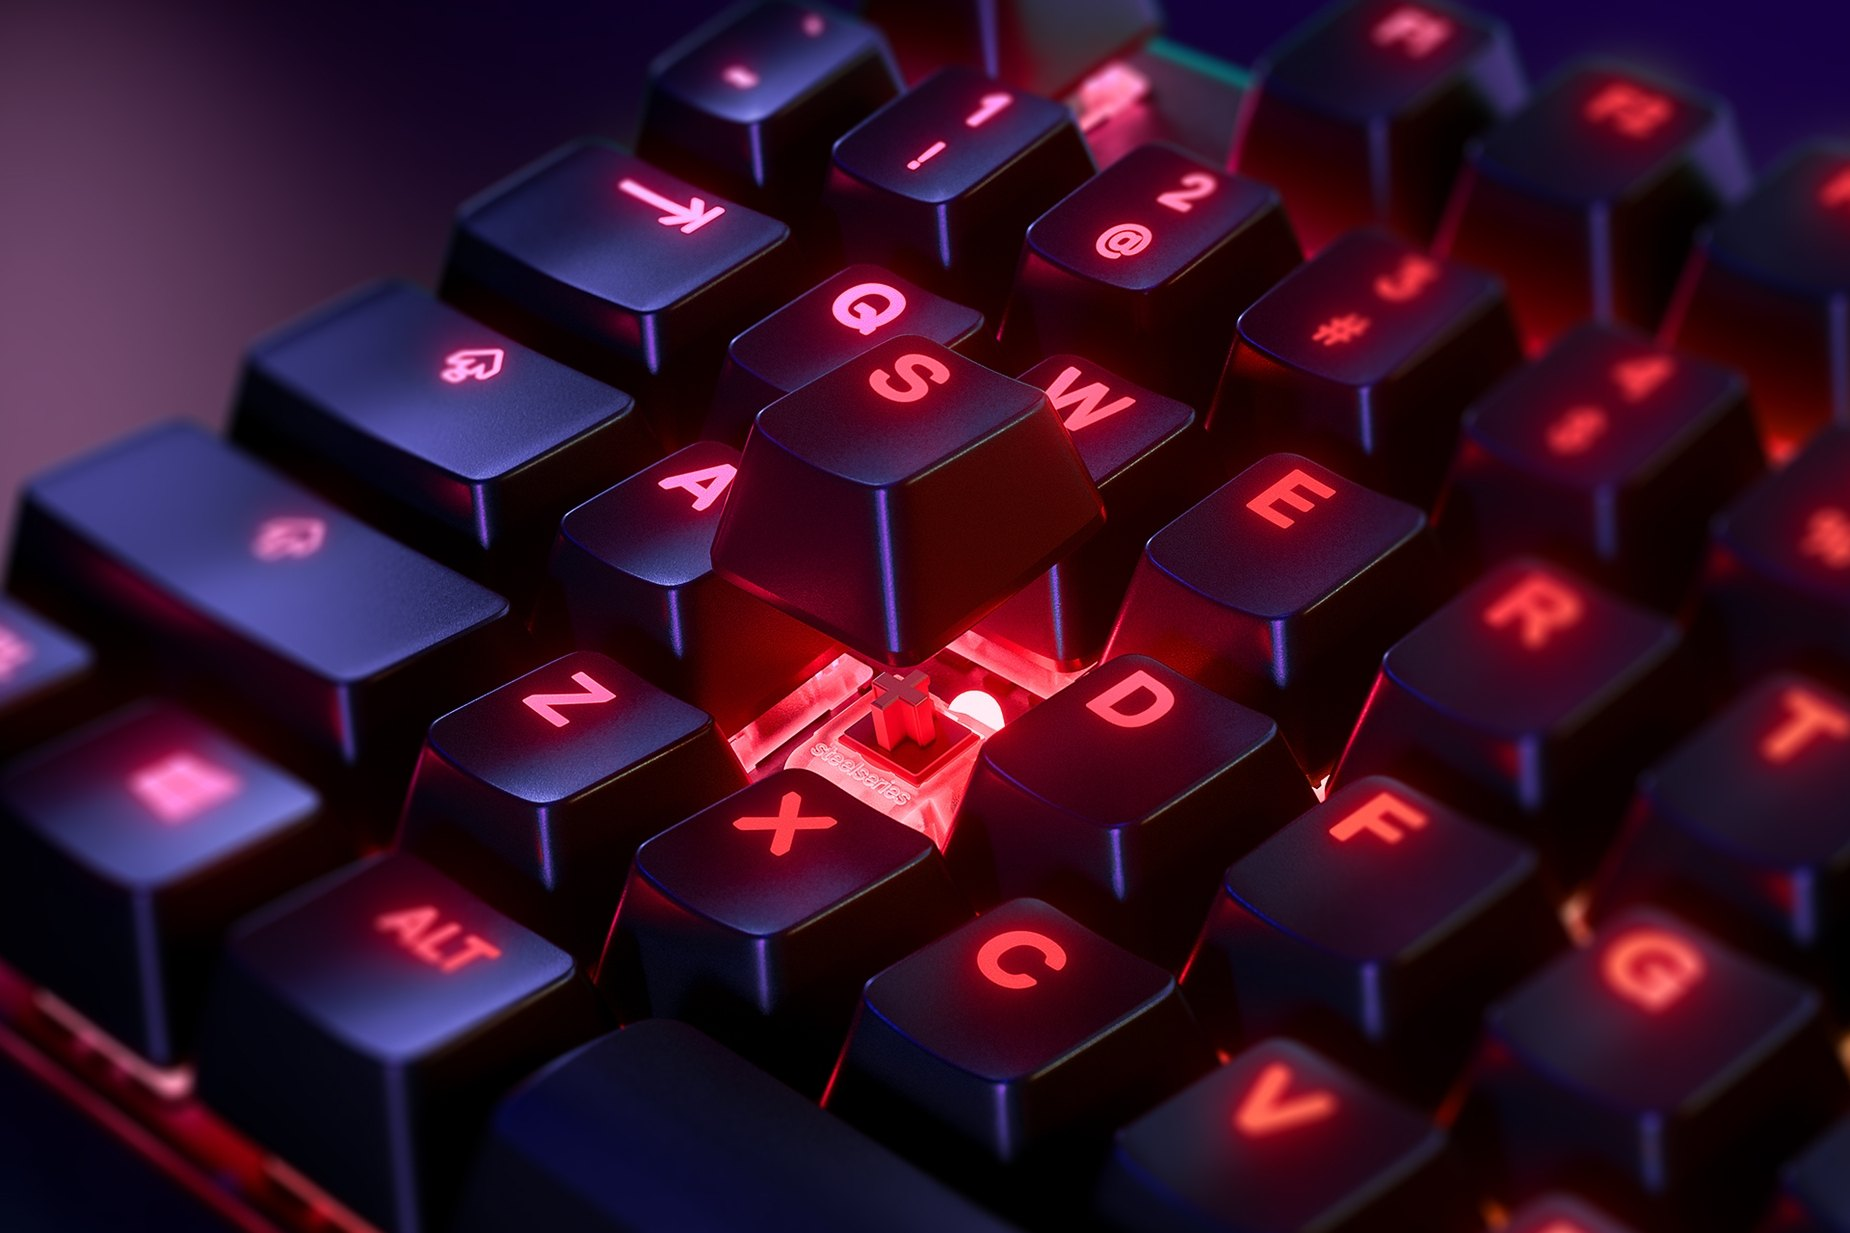 Zoomed in view of a single key on the Nordic - Apex 7 TKL (Kırmızı Anahtar) gaming keyboard, the key is raised up to show the SteelSeries QX2 Mechanical RGB Switch underneath